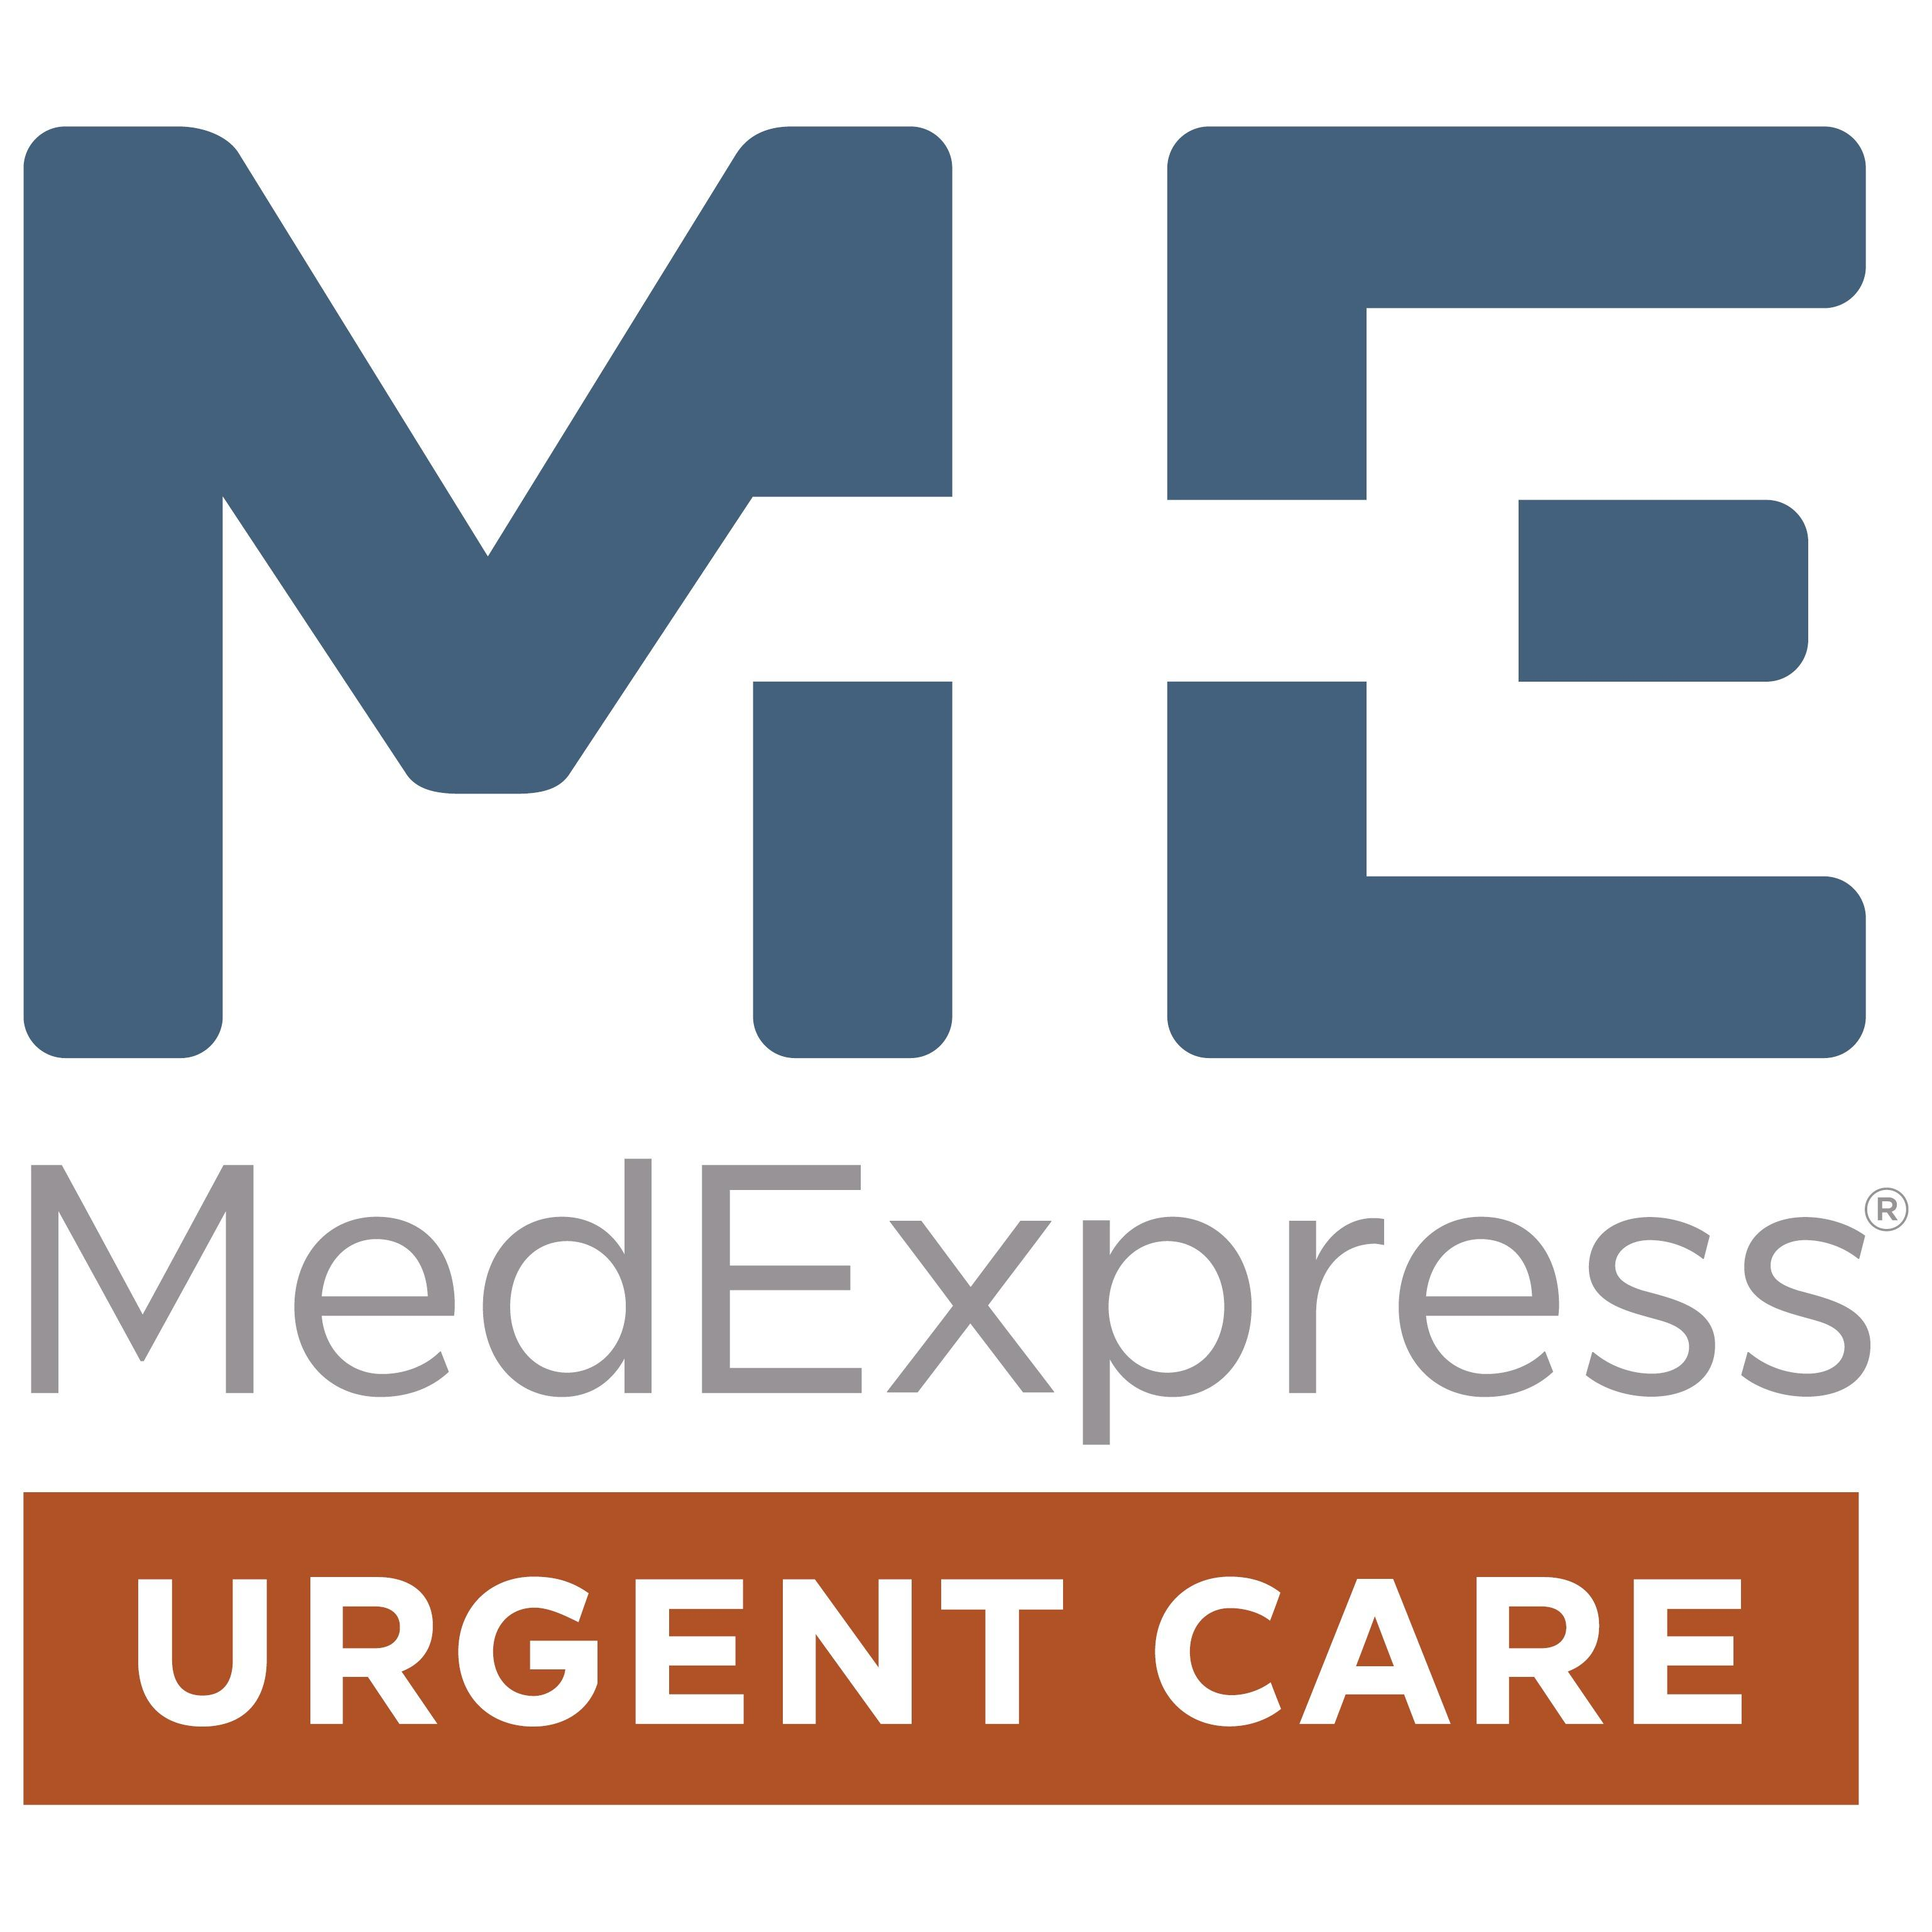 MedExpress Urgent Care - Greensburg, PA - Emergency Medicine